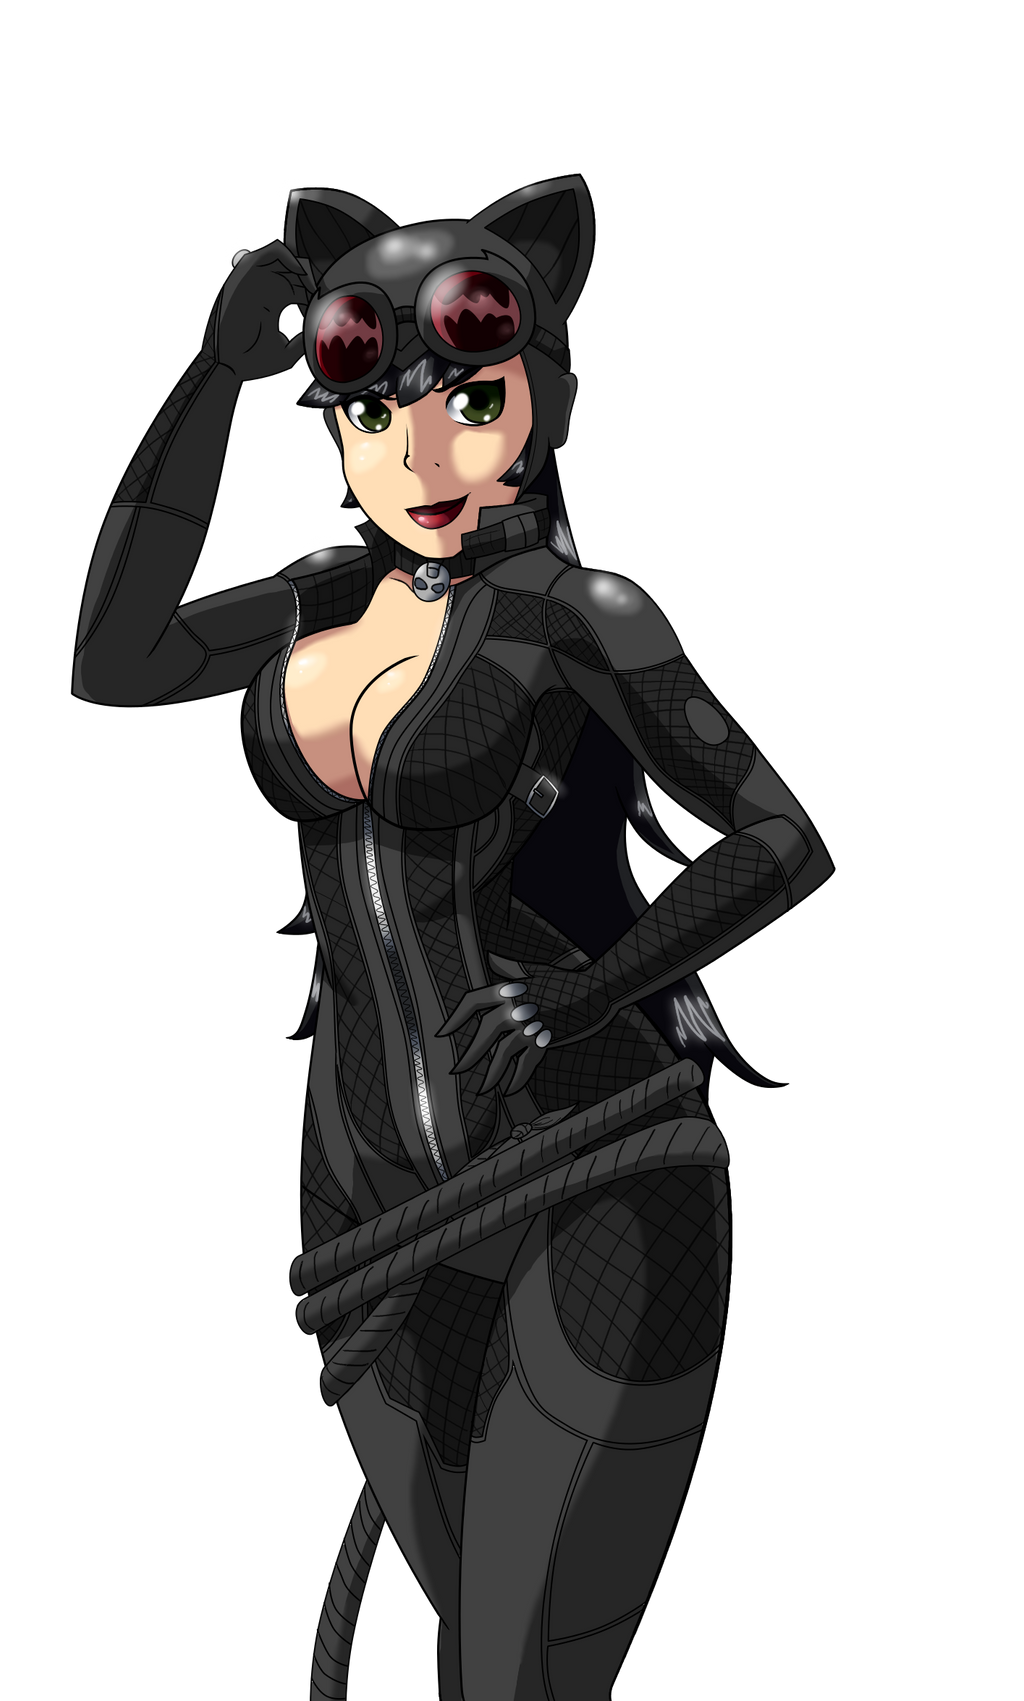 Catwoman arkham city unzipping her suit xvideos sex video